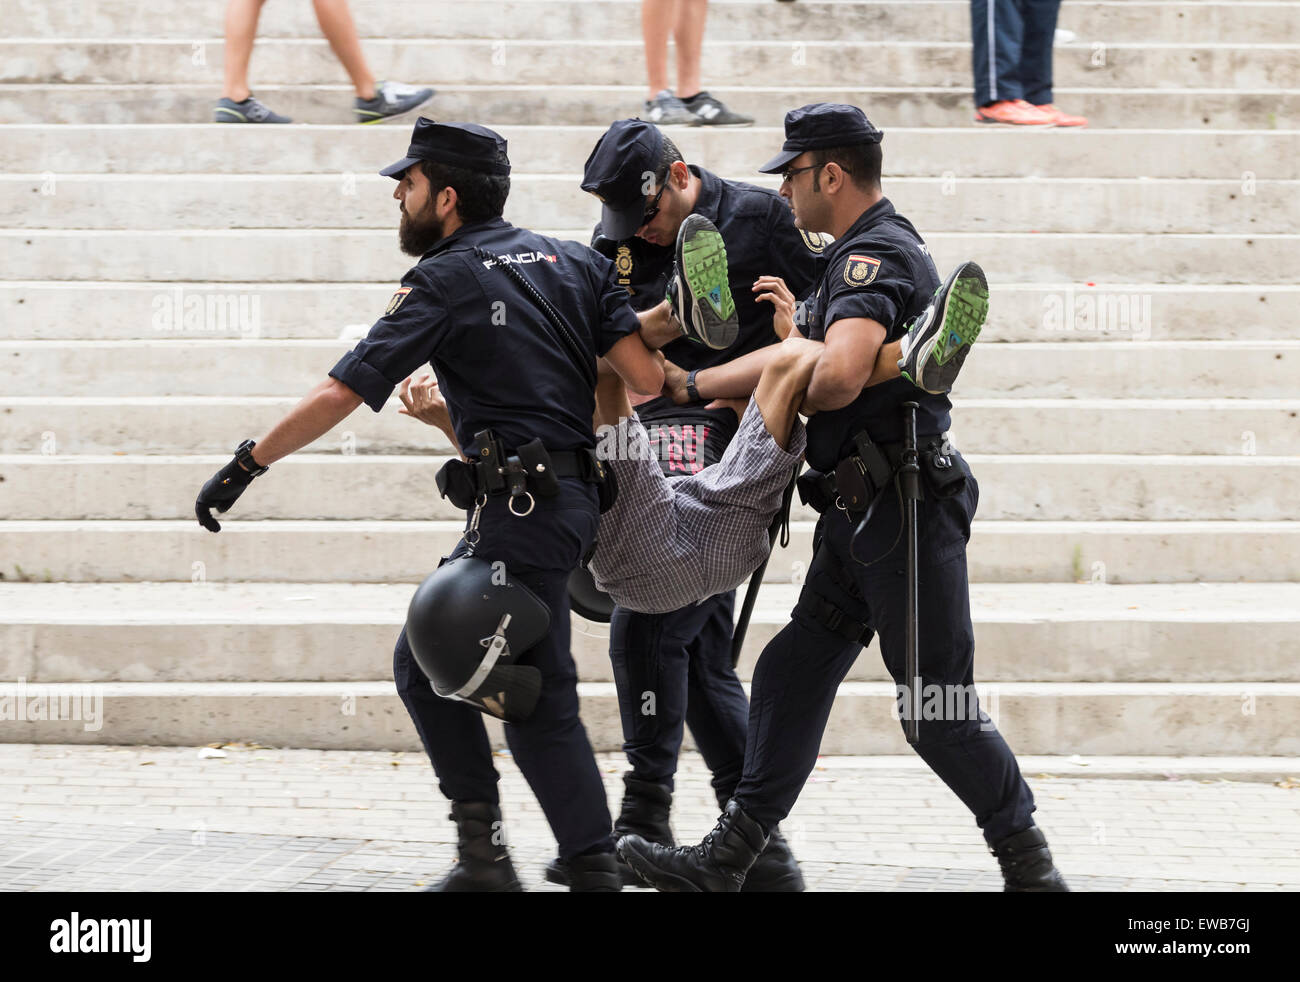 Spanish Policia Nacional (National Police) carrying a supporter during disturbance outside football stadium. - Stock Image